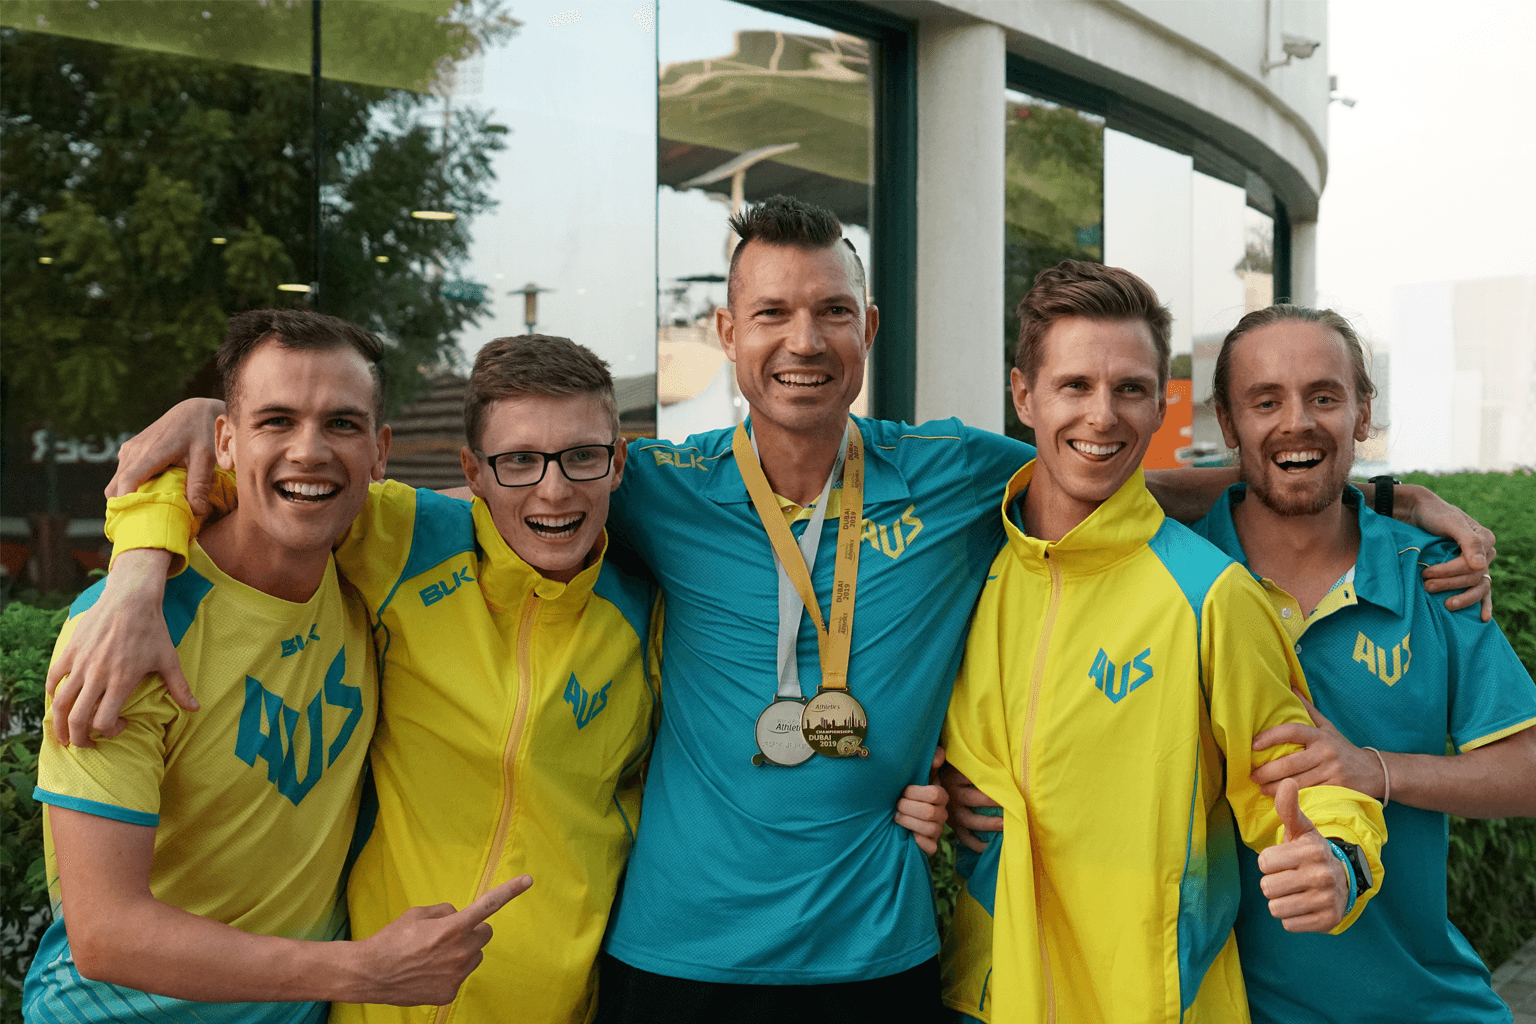 Coach Philo Saunders, centre, with athletes Deon Kenzie, Jaryd Clifford, left, and Michael Roeger and